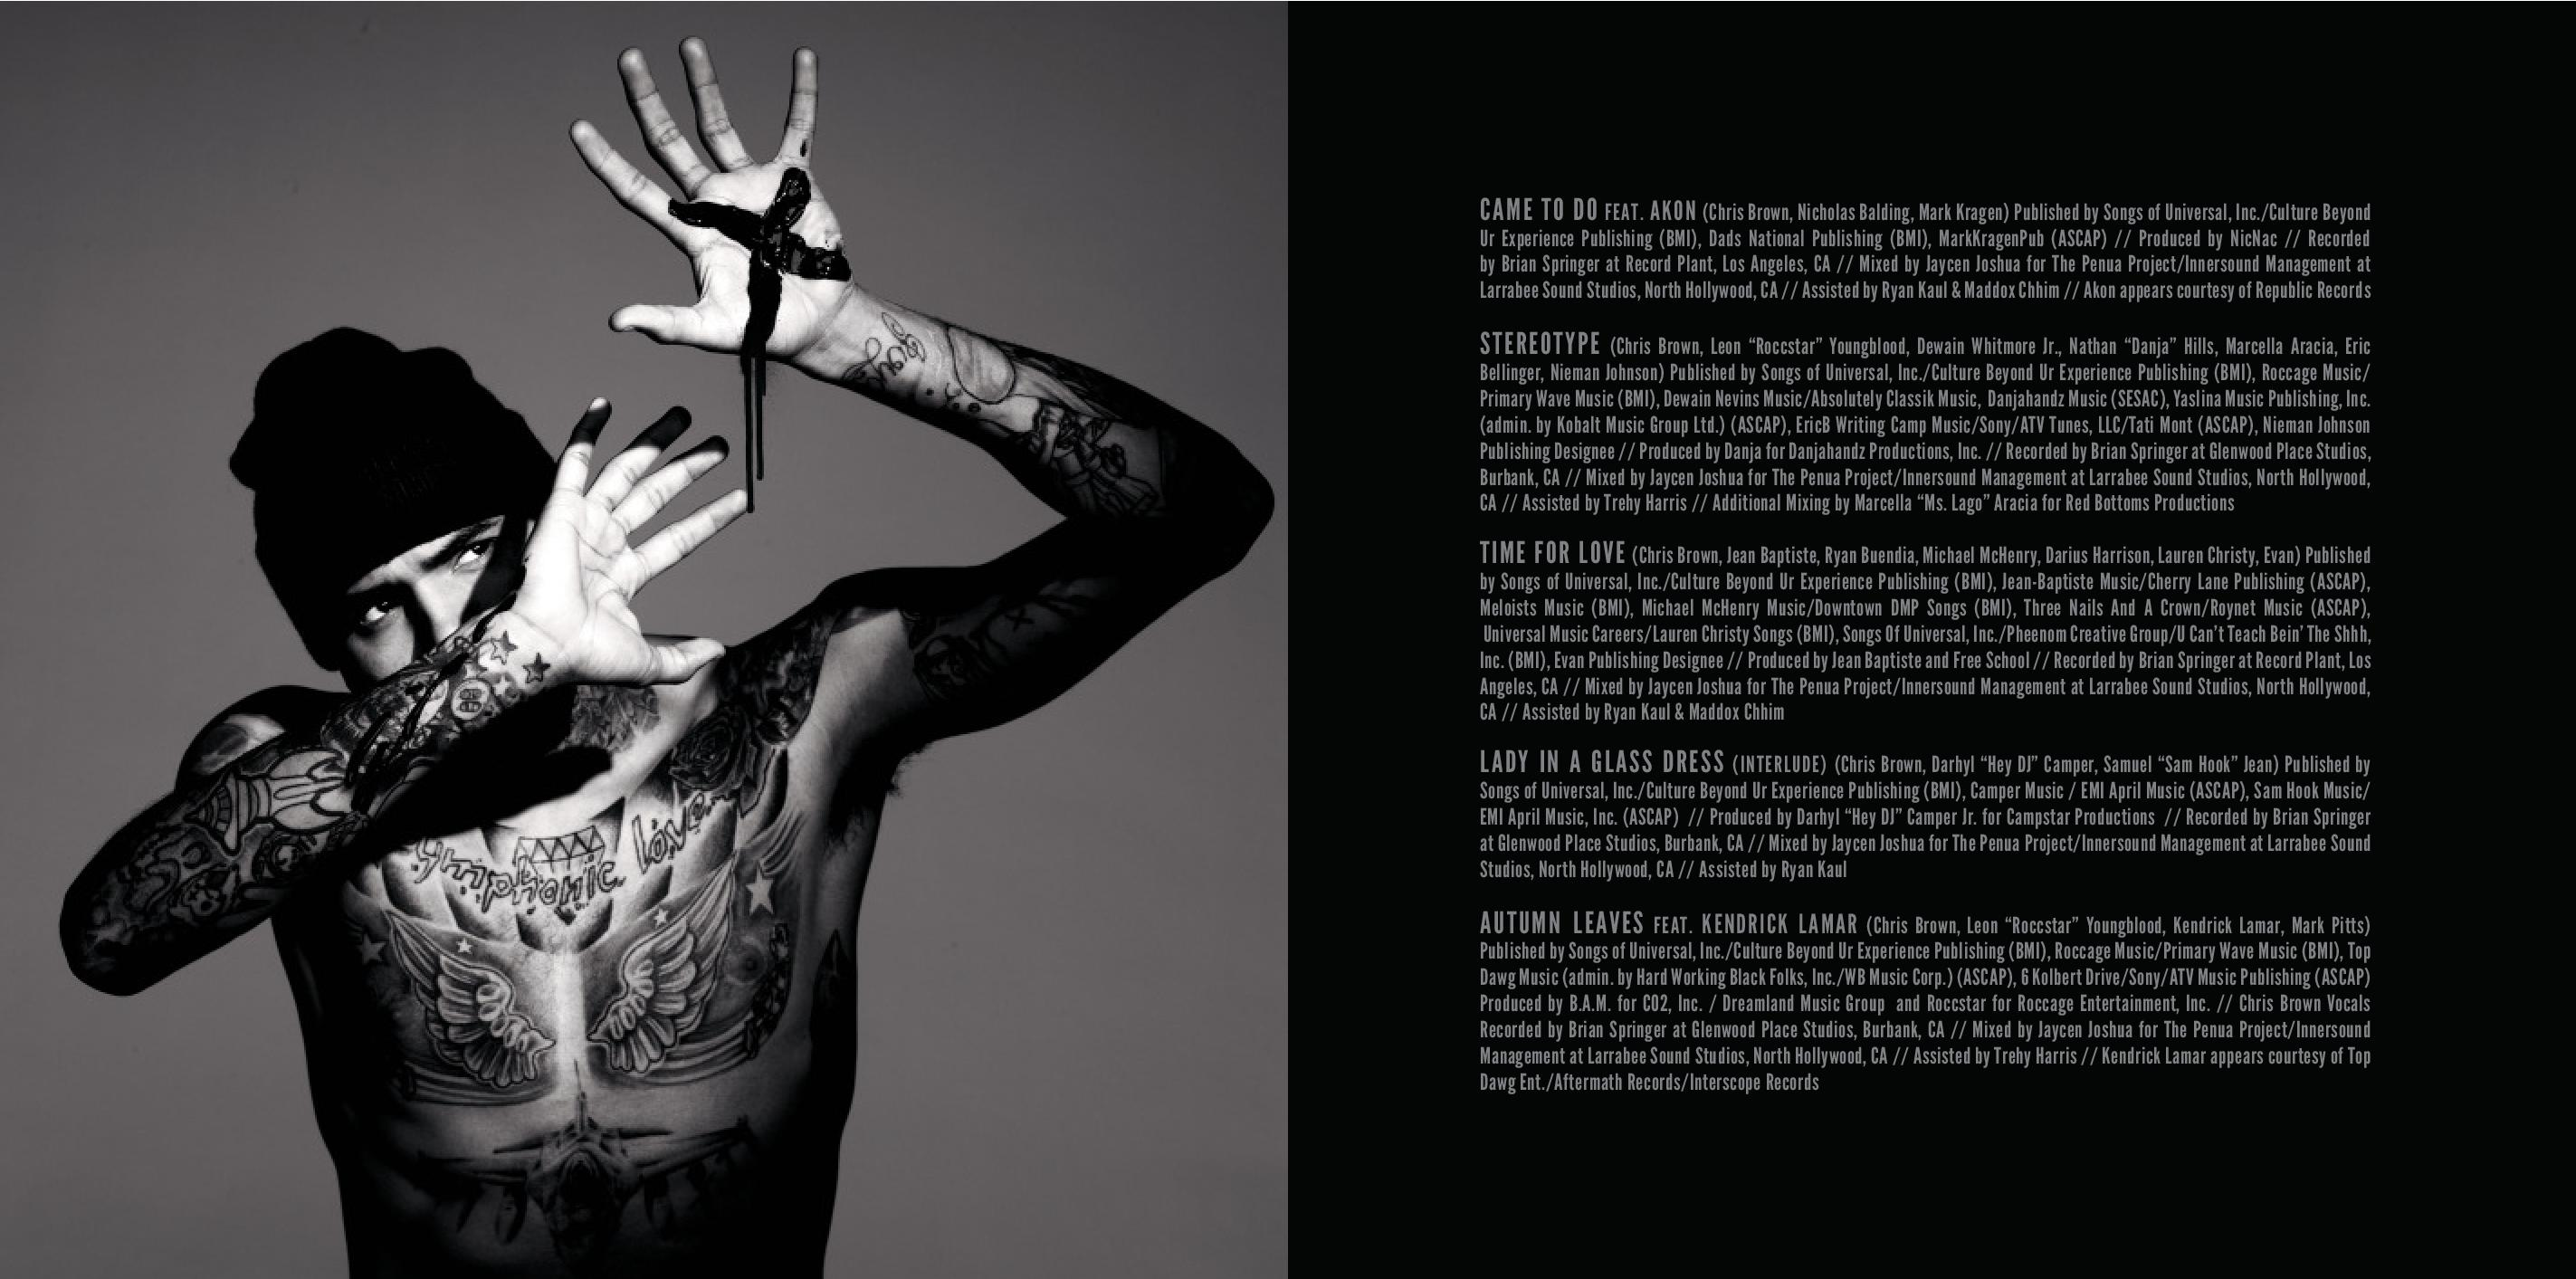 chris brown x deluxe edition - photo #12